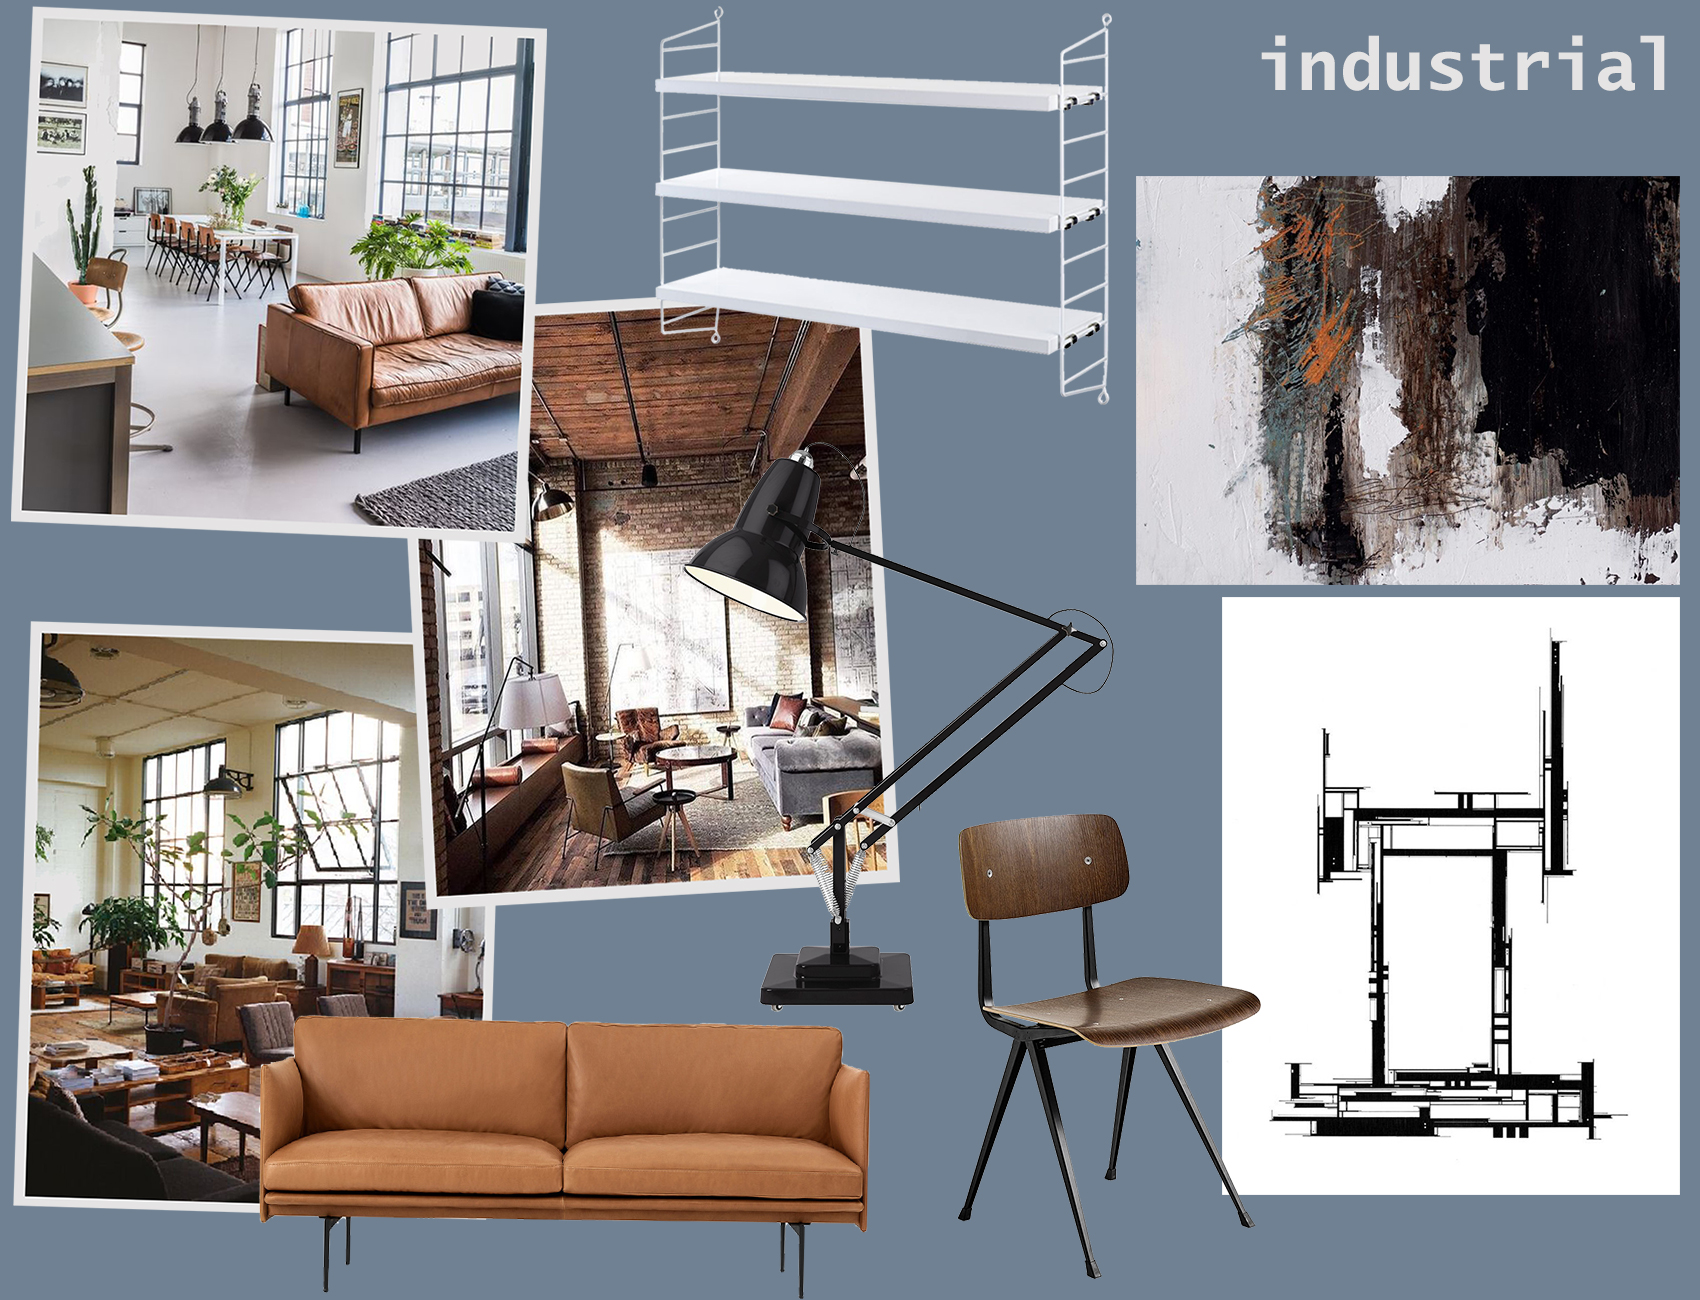 industrial moodboard by utility design